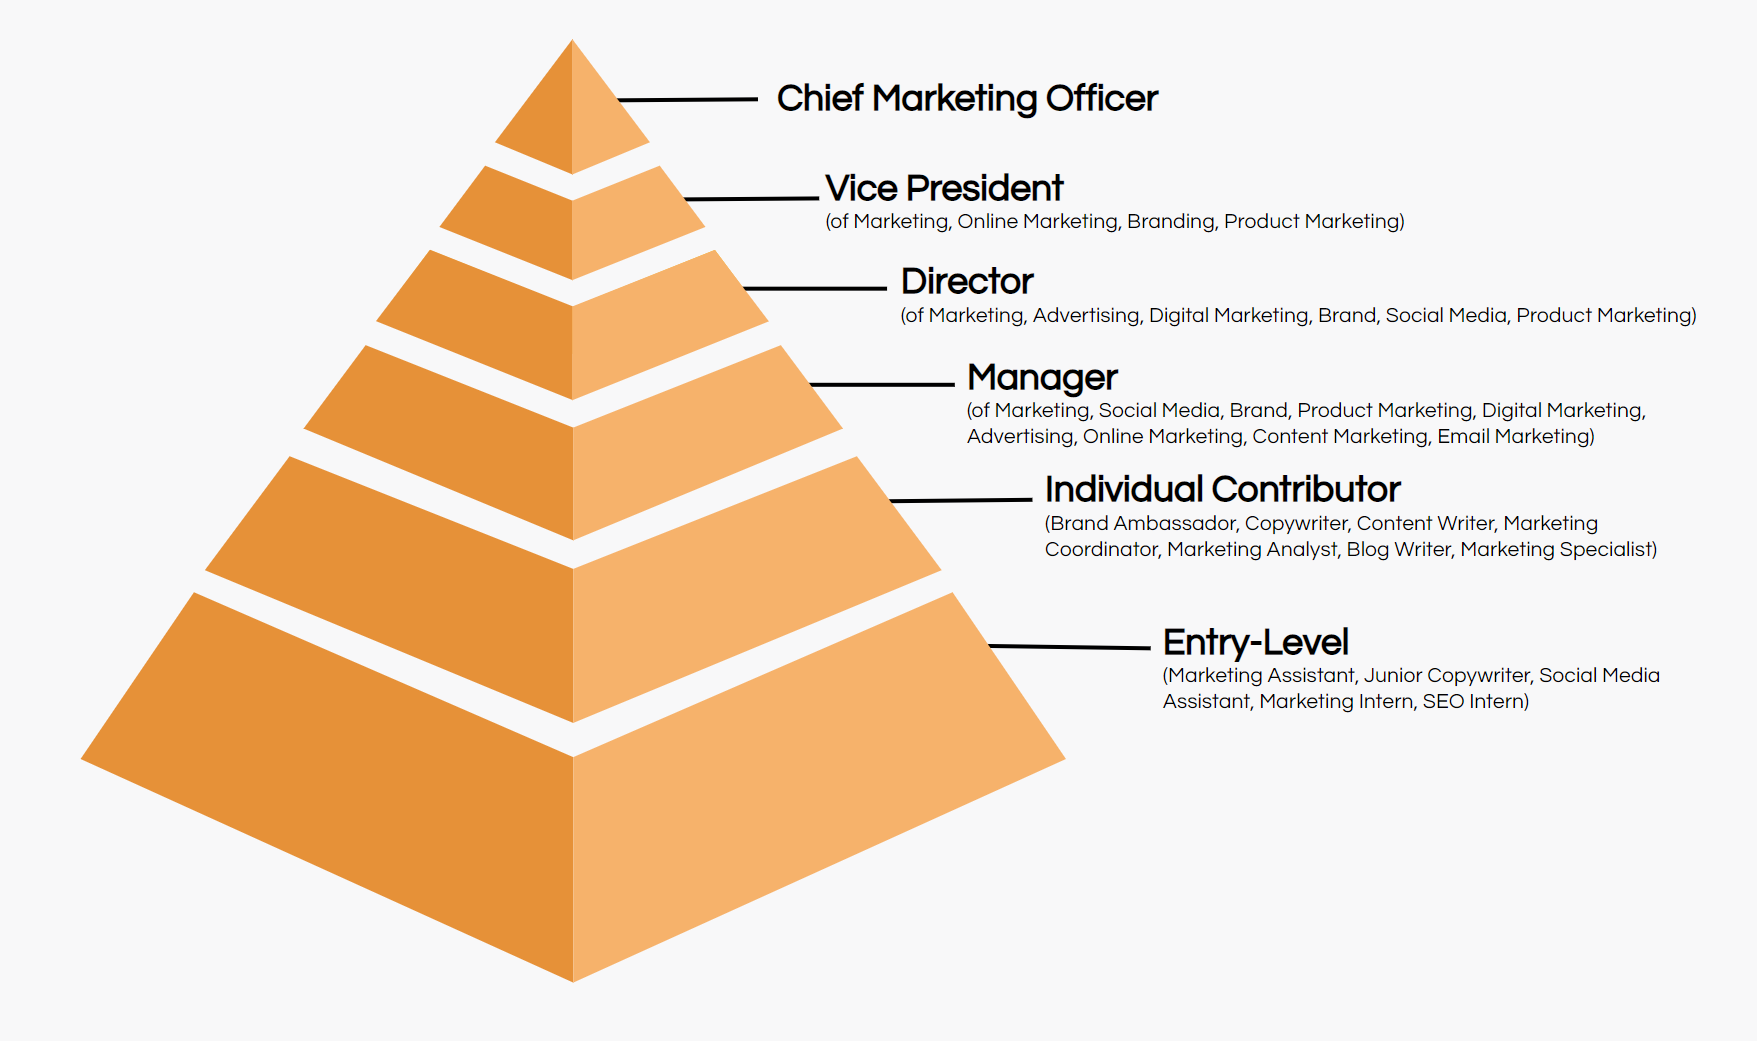 marketing job titles hierarchy